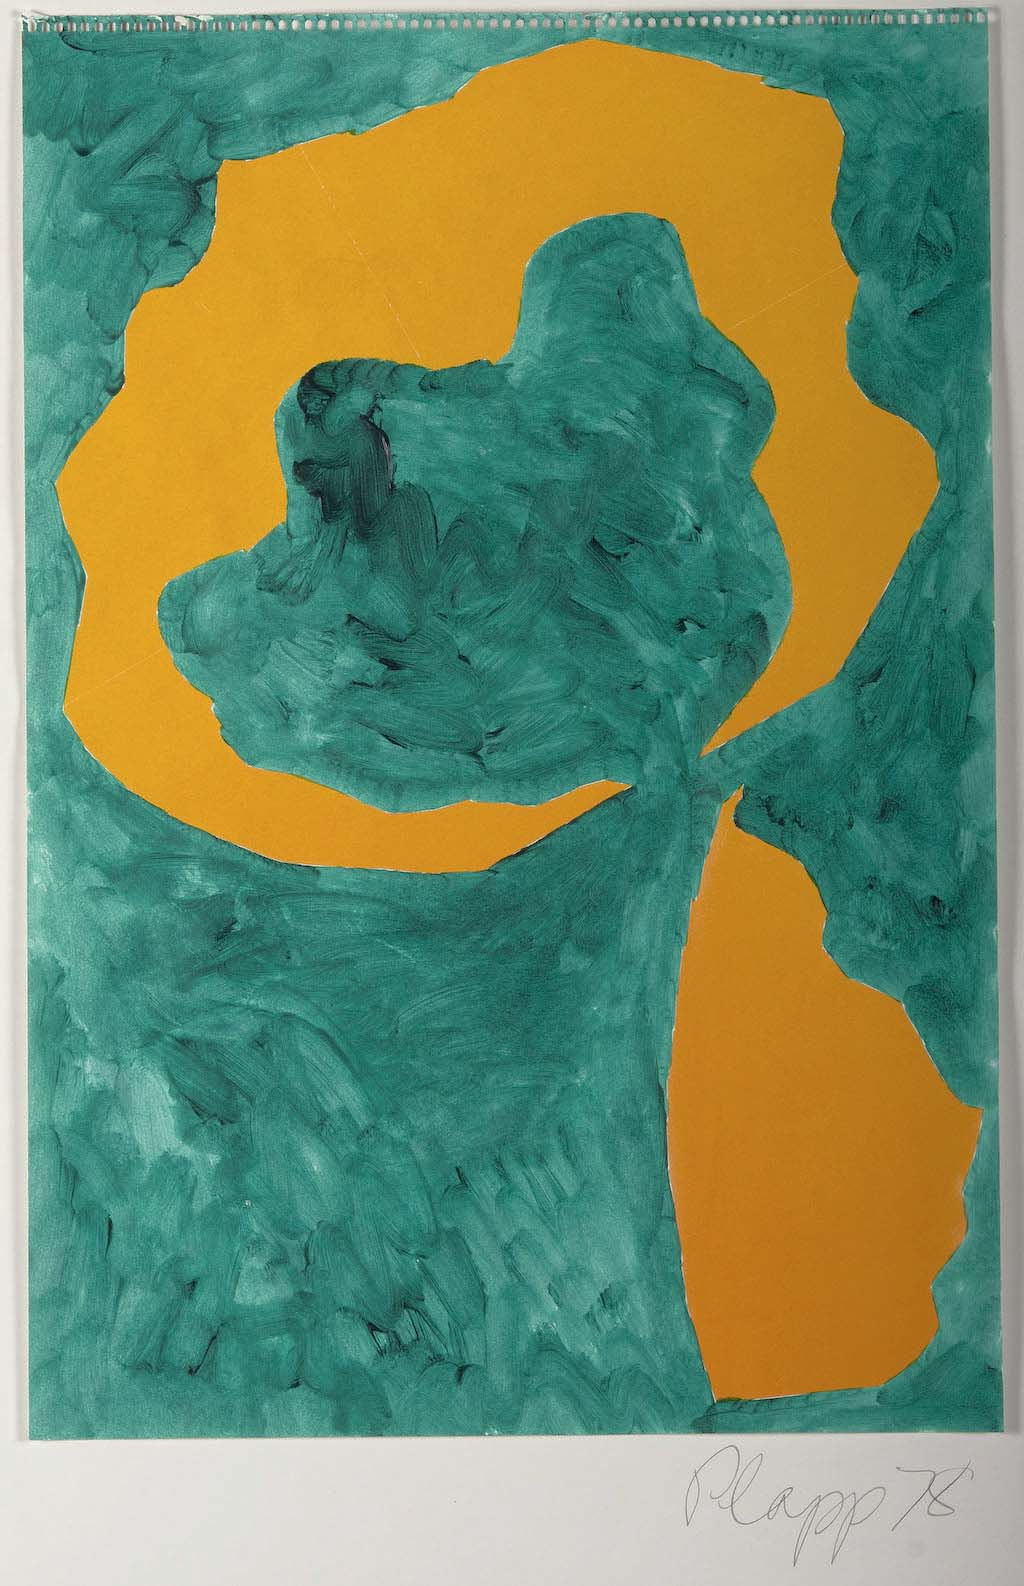 Abstract painting with mottled green background and solid yellow flower-like shapes